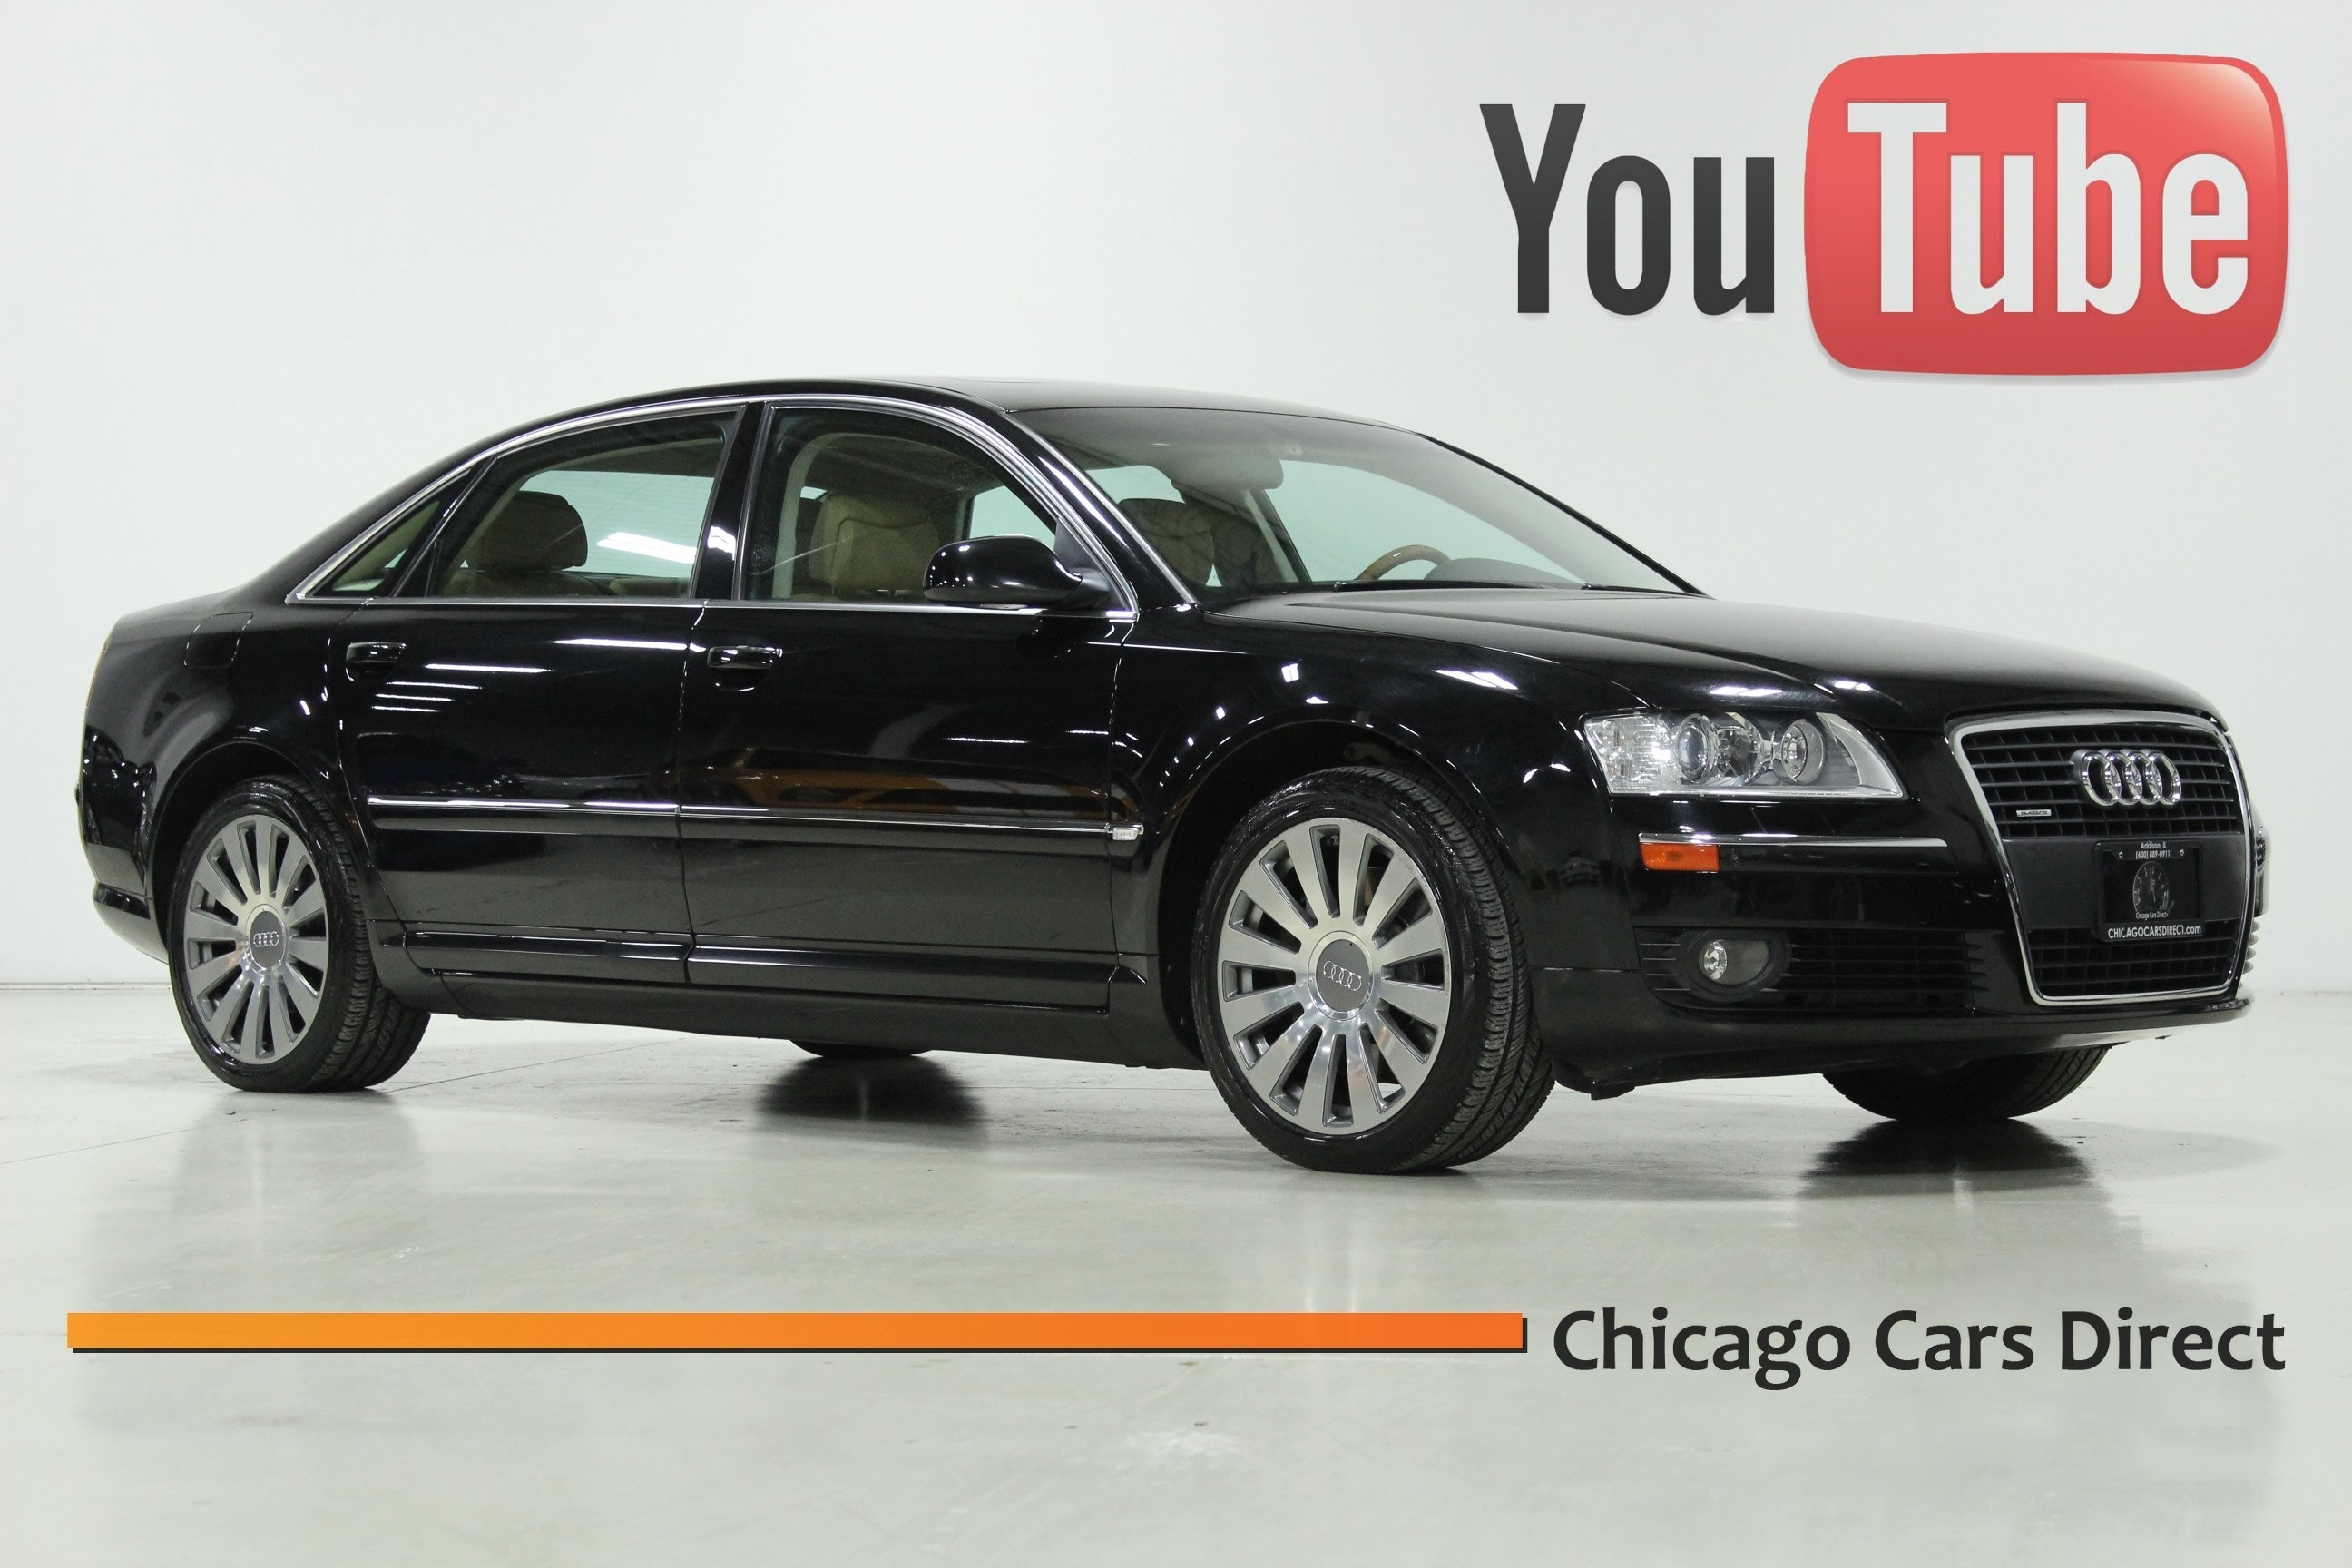 pin pinterest sale cars for edurne and autos acevedo audi on by